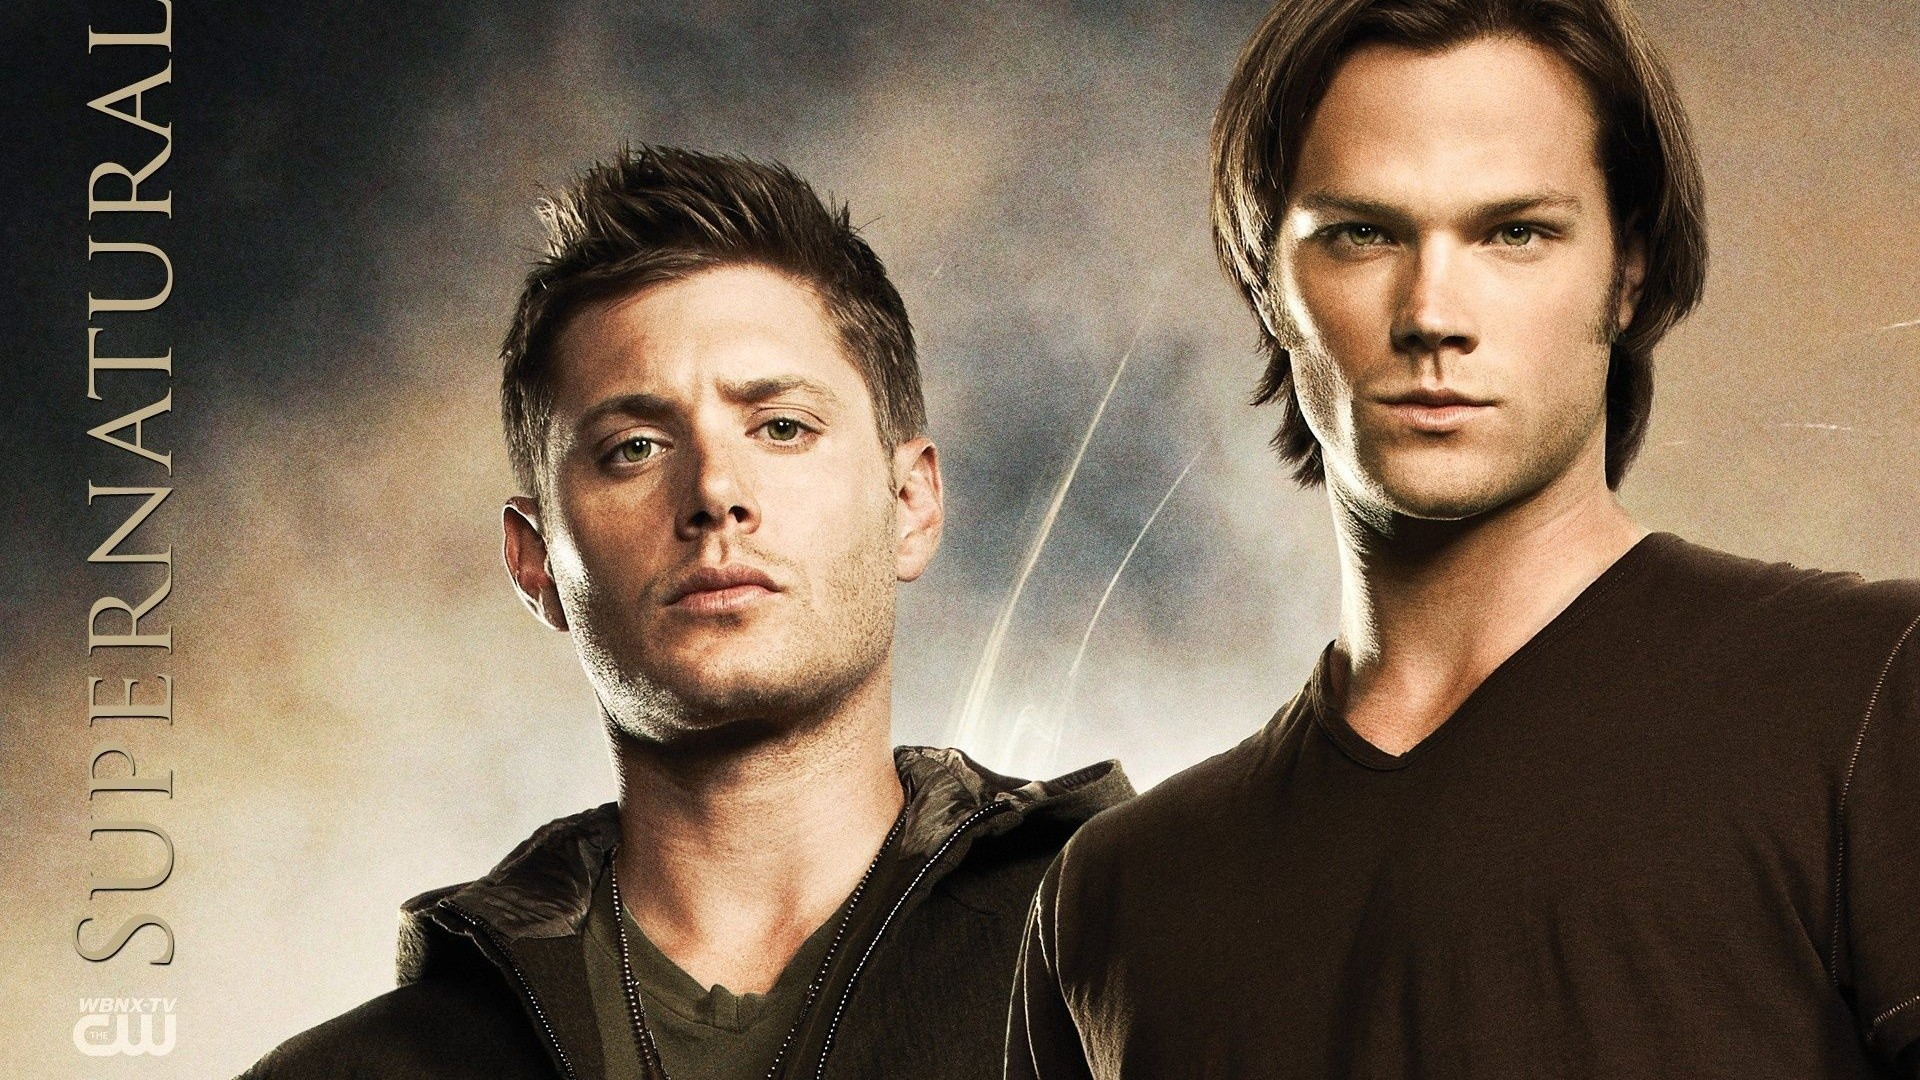 1920x1080 movies supernatural backgrounds wallpaper desktop wallpapers hd high  definition windows 10 colourful images backgrounds download wallpaper free  1920×1080 ...